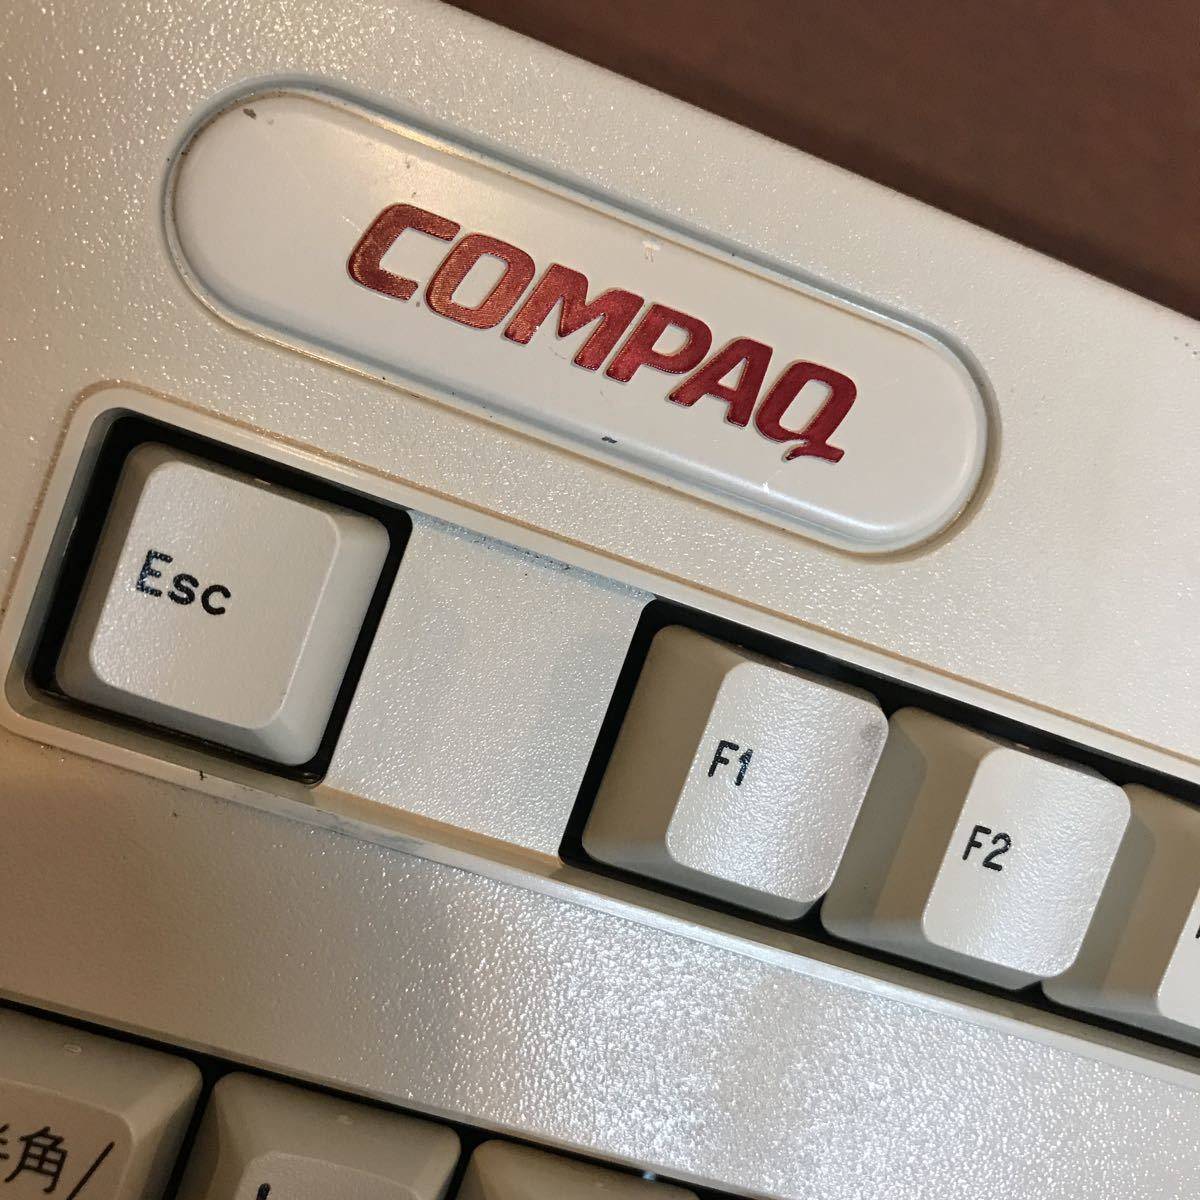 compaq vocalyst keybord made in mexico 美品のジャンク レア品?_画像4